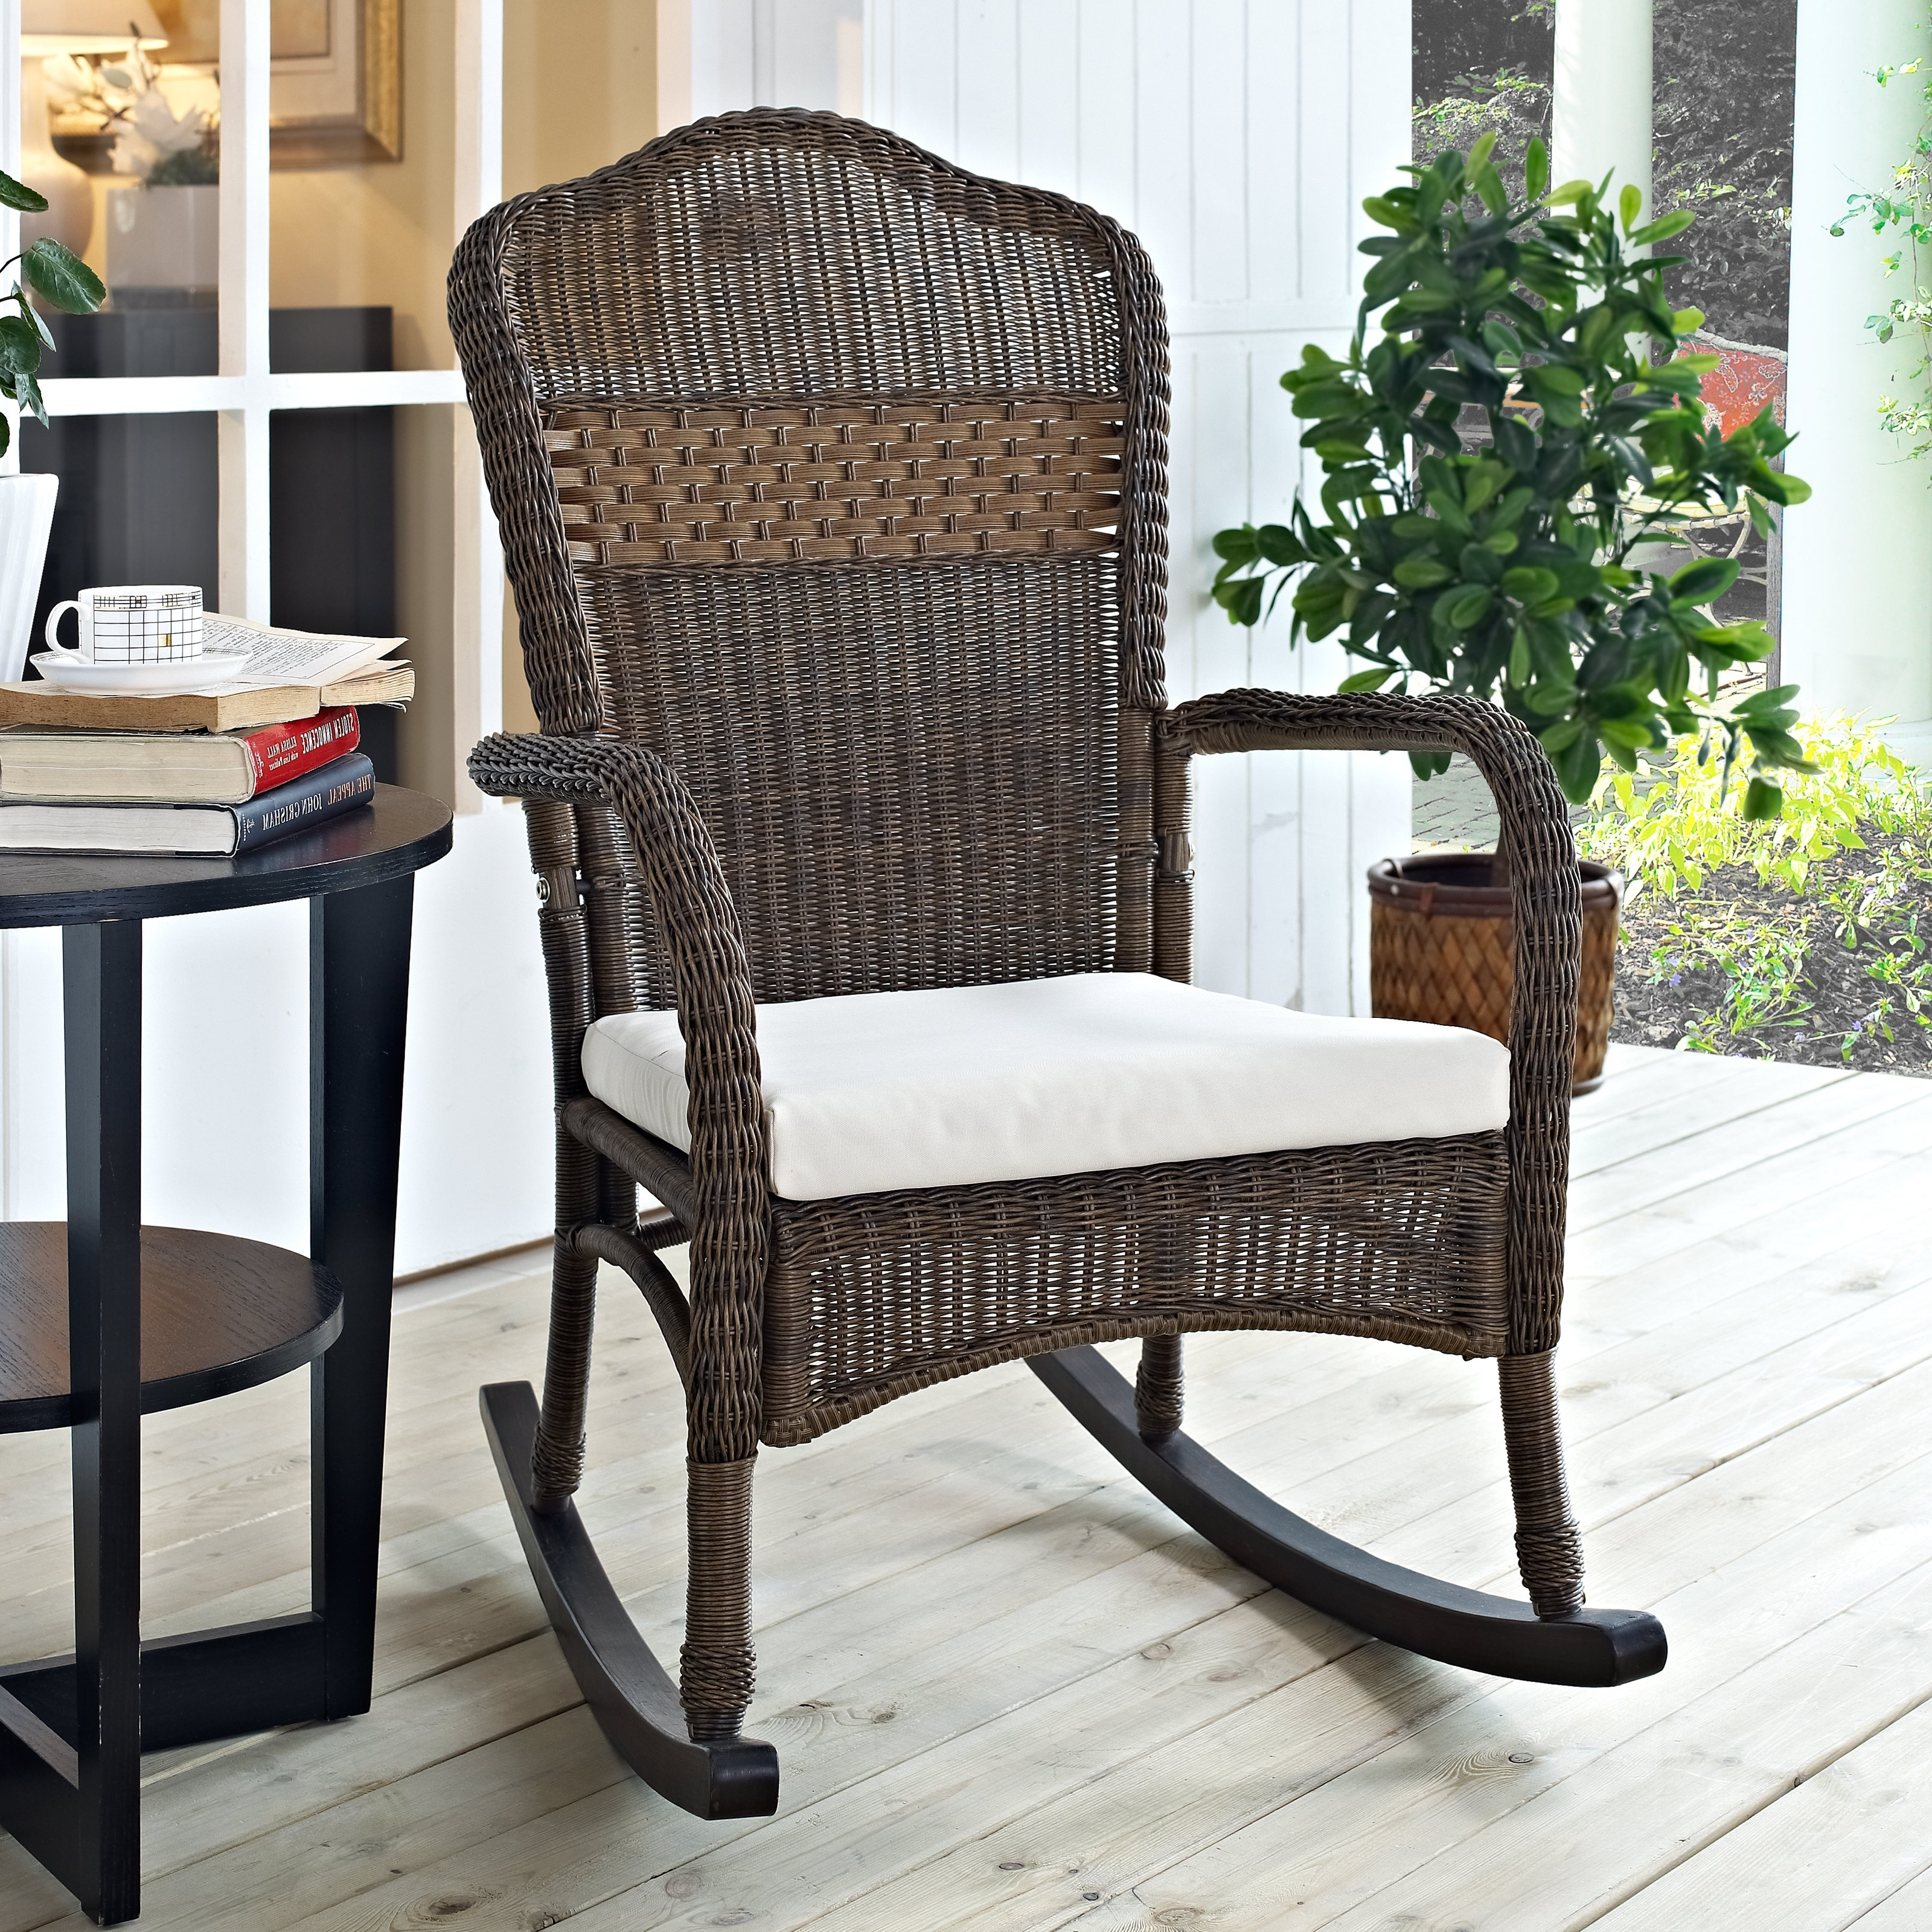 Magnificent Wicker Outdoor Rocking Chair 3 Master Cwr368 Intended For Well Liked Outside Rocking Chair Sets (View 12 of 15)